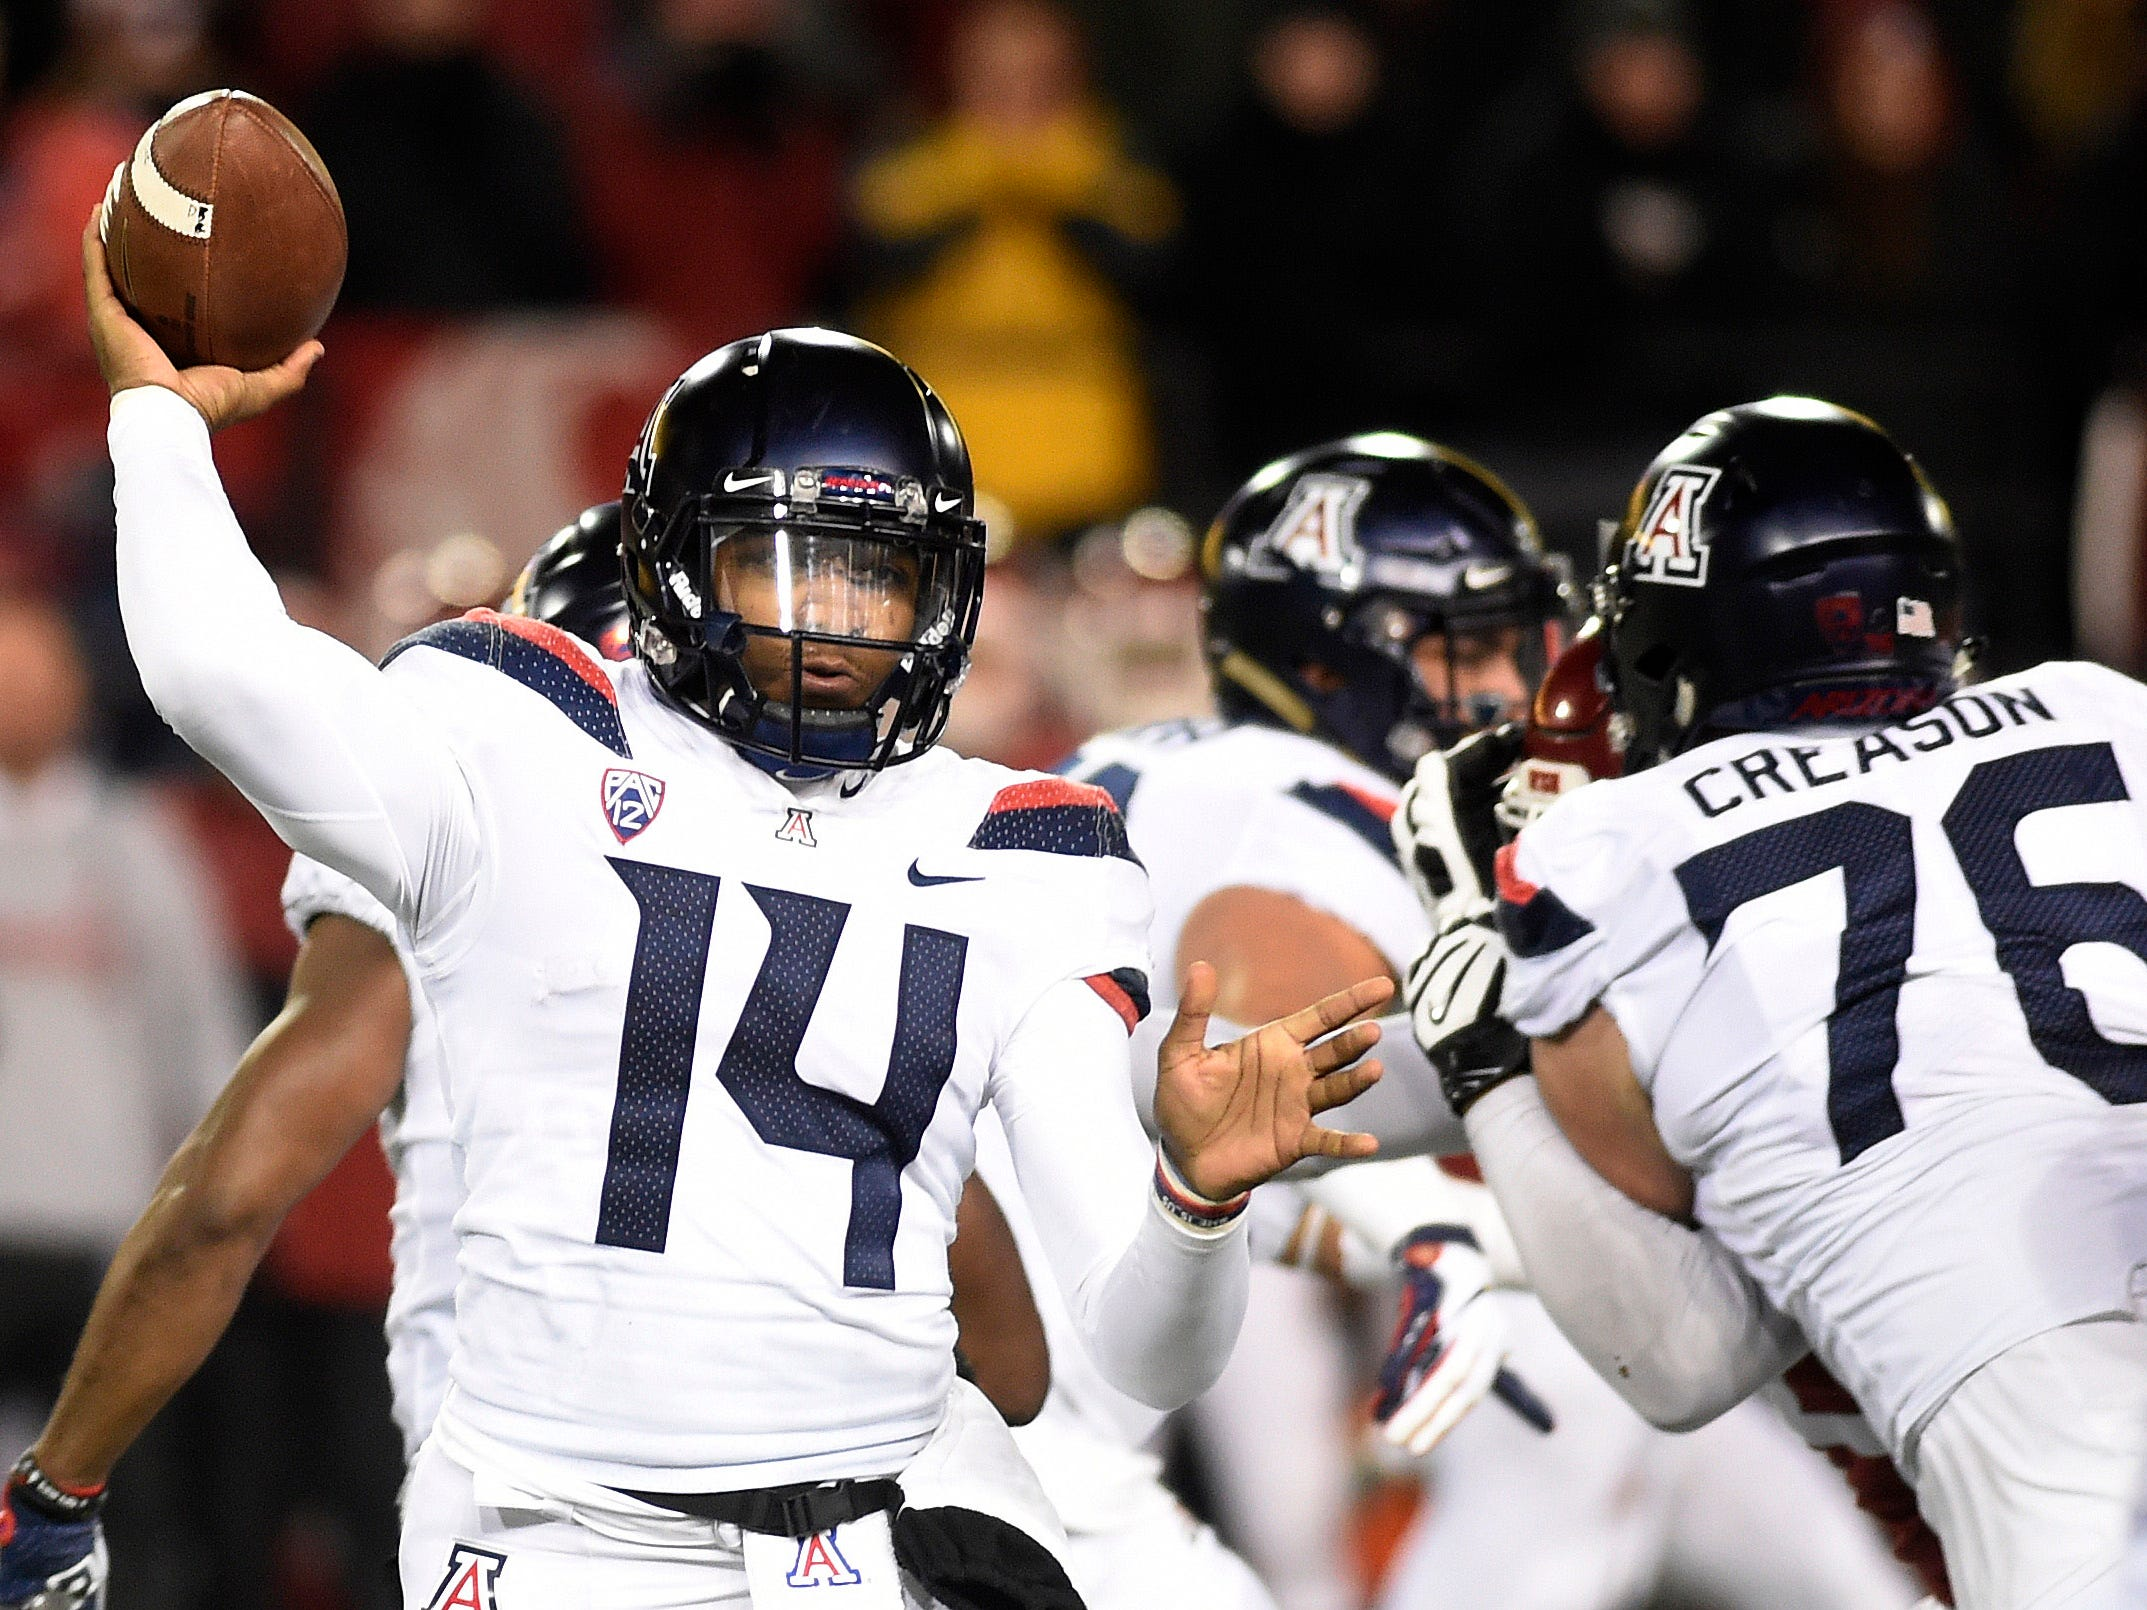 Nov 17, 2018; Pullman, WA, USA; Arizona Wildcats quarterback Khalil Tate (14) throws the football during a game against the Washington State Cougars in the second half at Martin Stadium. Mandatory Credit: James Snook-USA TODAY Sports